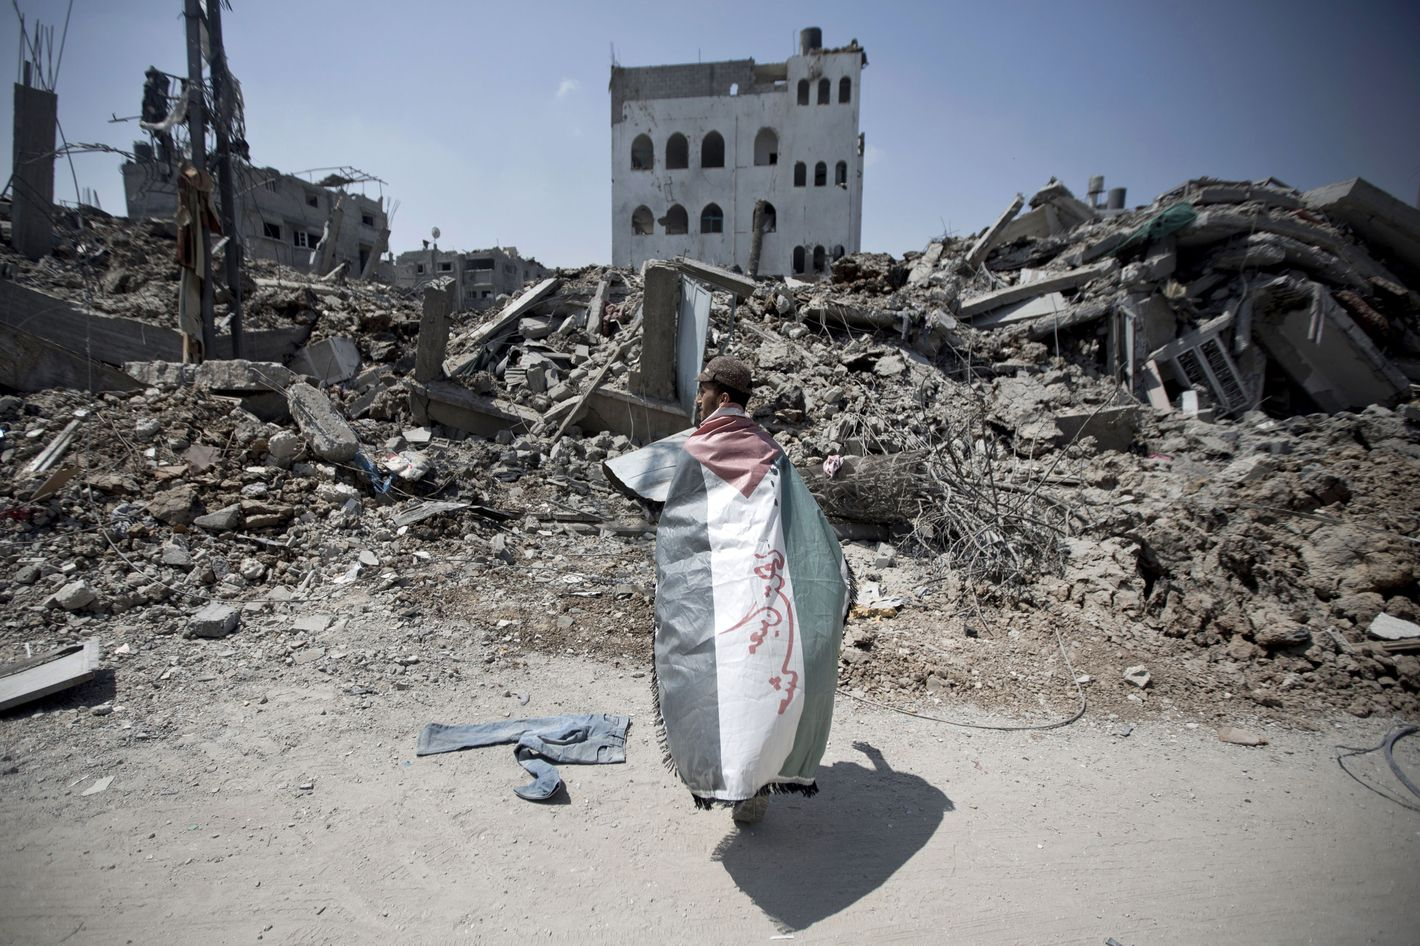 A Palestinian man, wrapped in his national flag, inspects the rubble of destroyed buildings and houses in the Shejaiya residential district of Gaza City, on July 28, 2014, on the beginning of the Muslim Eid festival ending the month-long fast of Ramadan. More than 6,200 Palestinians have been injured so far in the ongoing violence which began with an intensive air campaign on July 8 and expanded when Israel sent ground troops into the Gaza periphery on July 17.